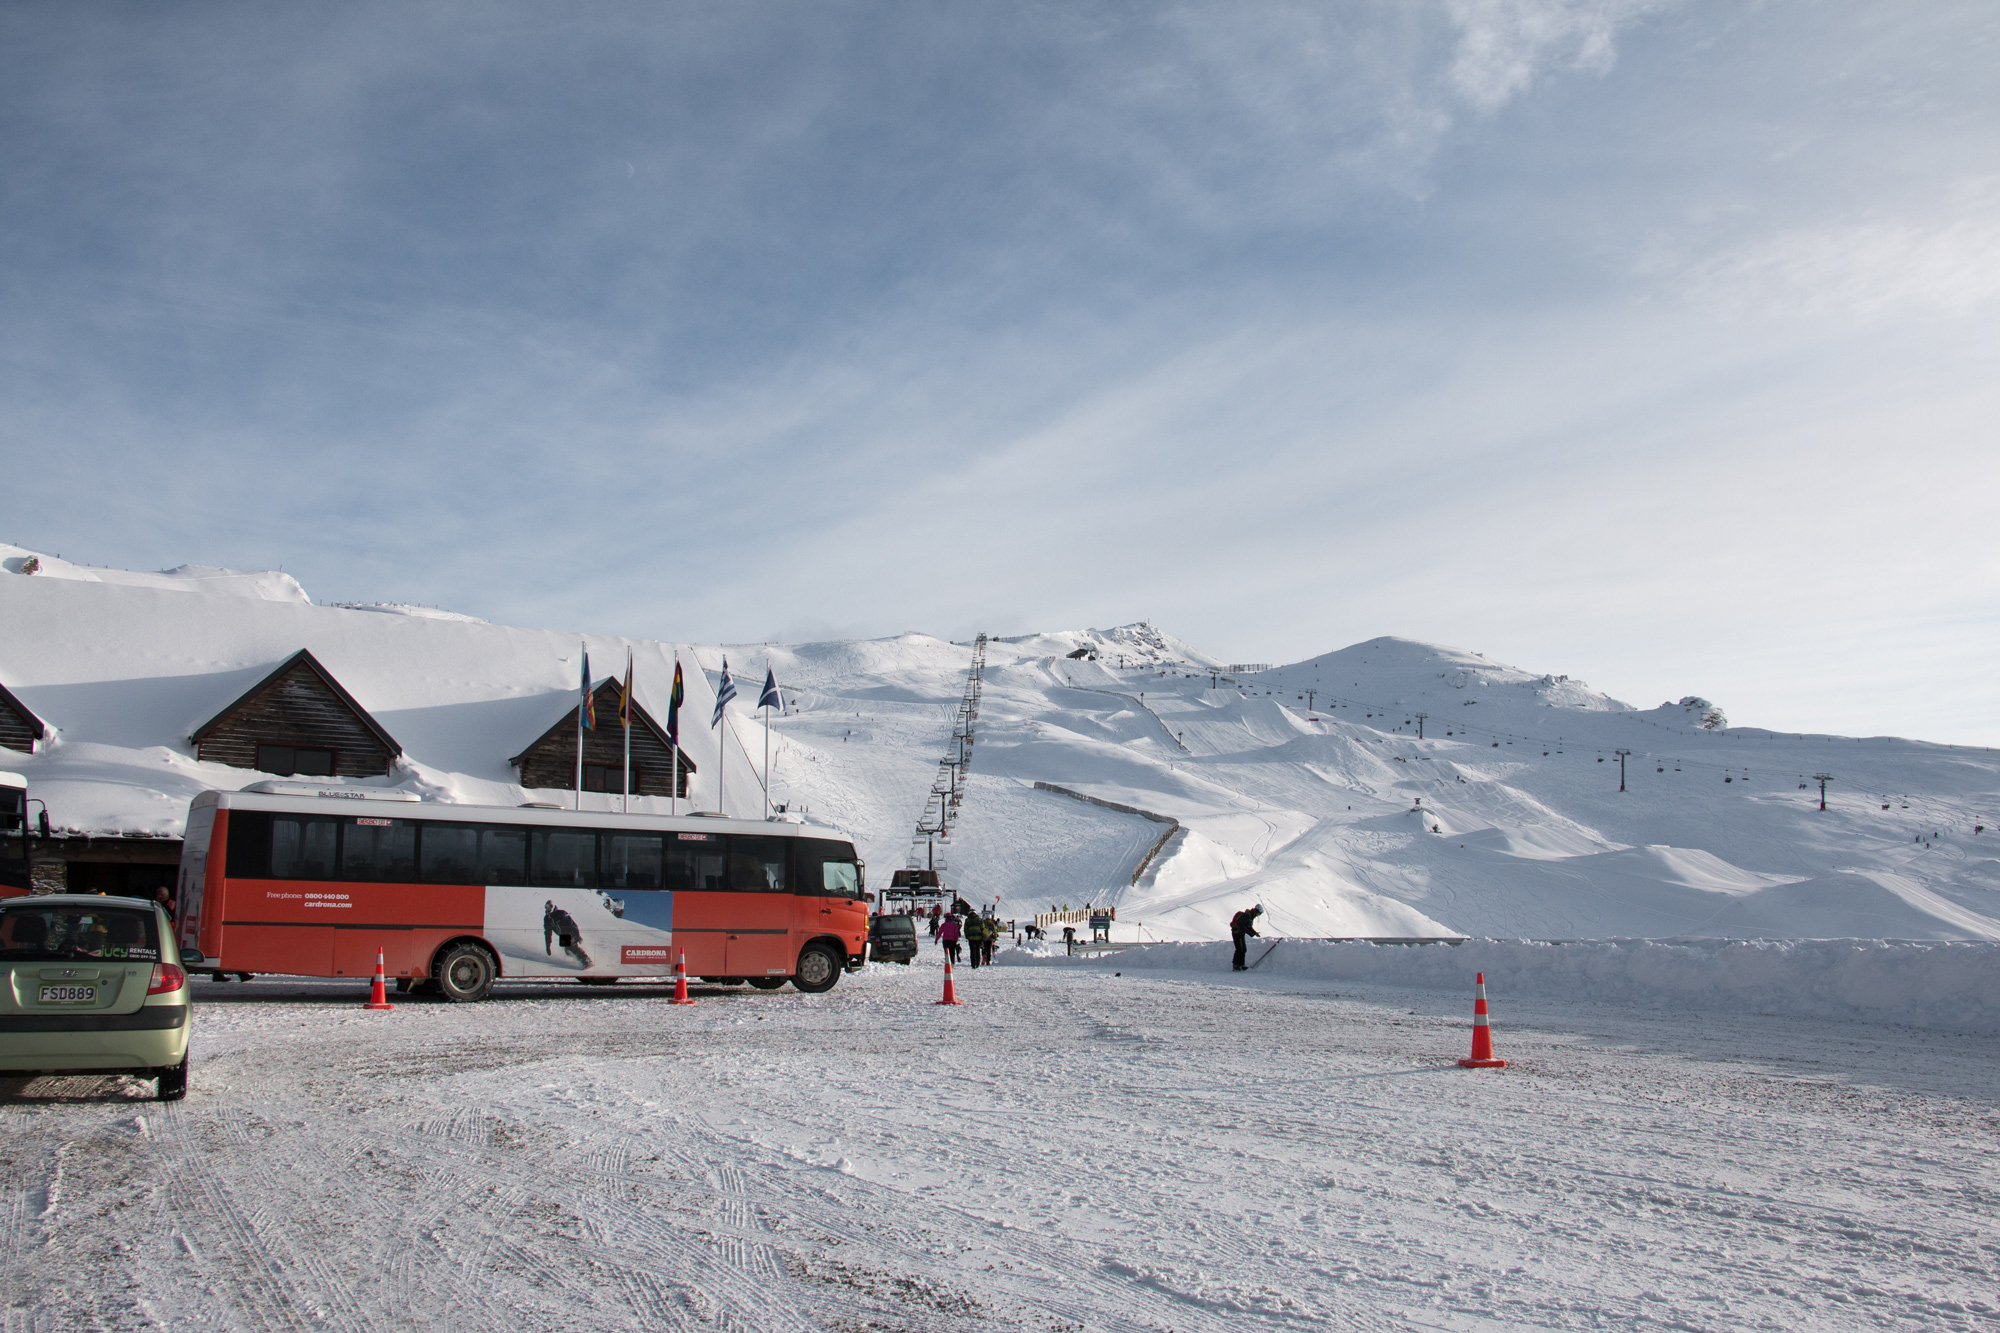 Cardrona Alpine Resort- Main basin - Skiing in New Zealand- Beginner skiing